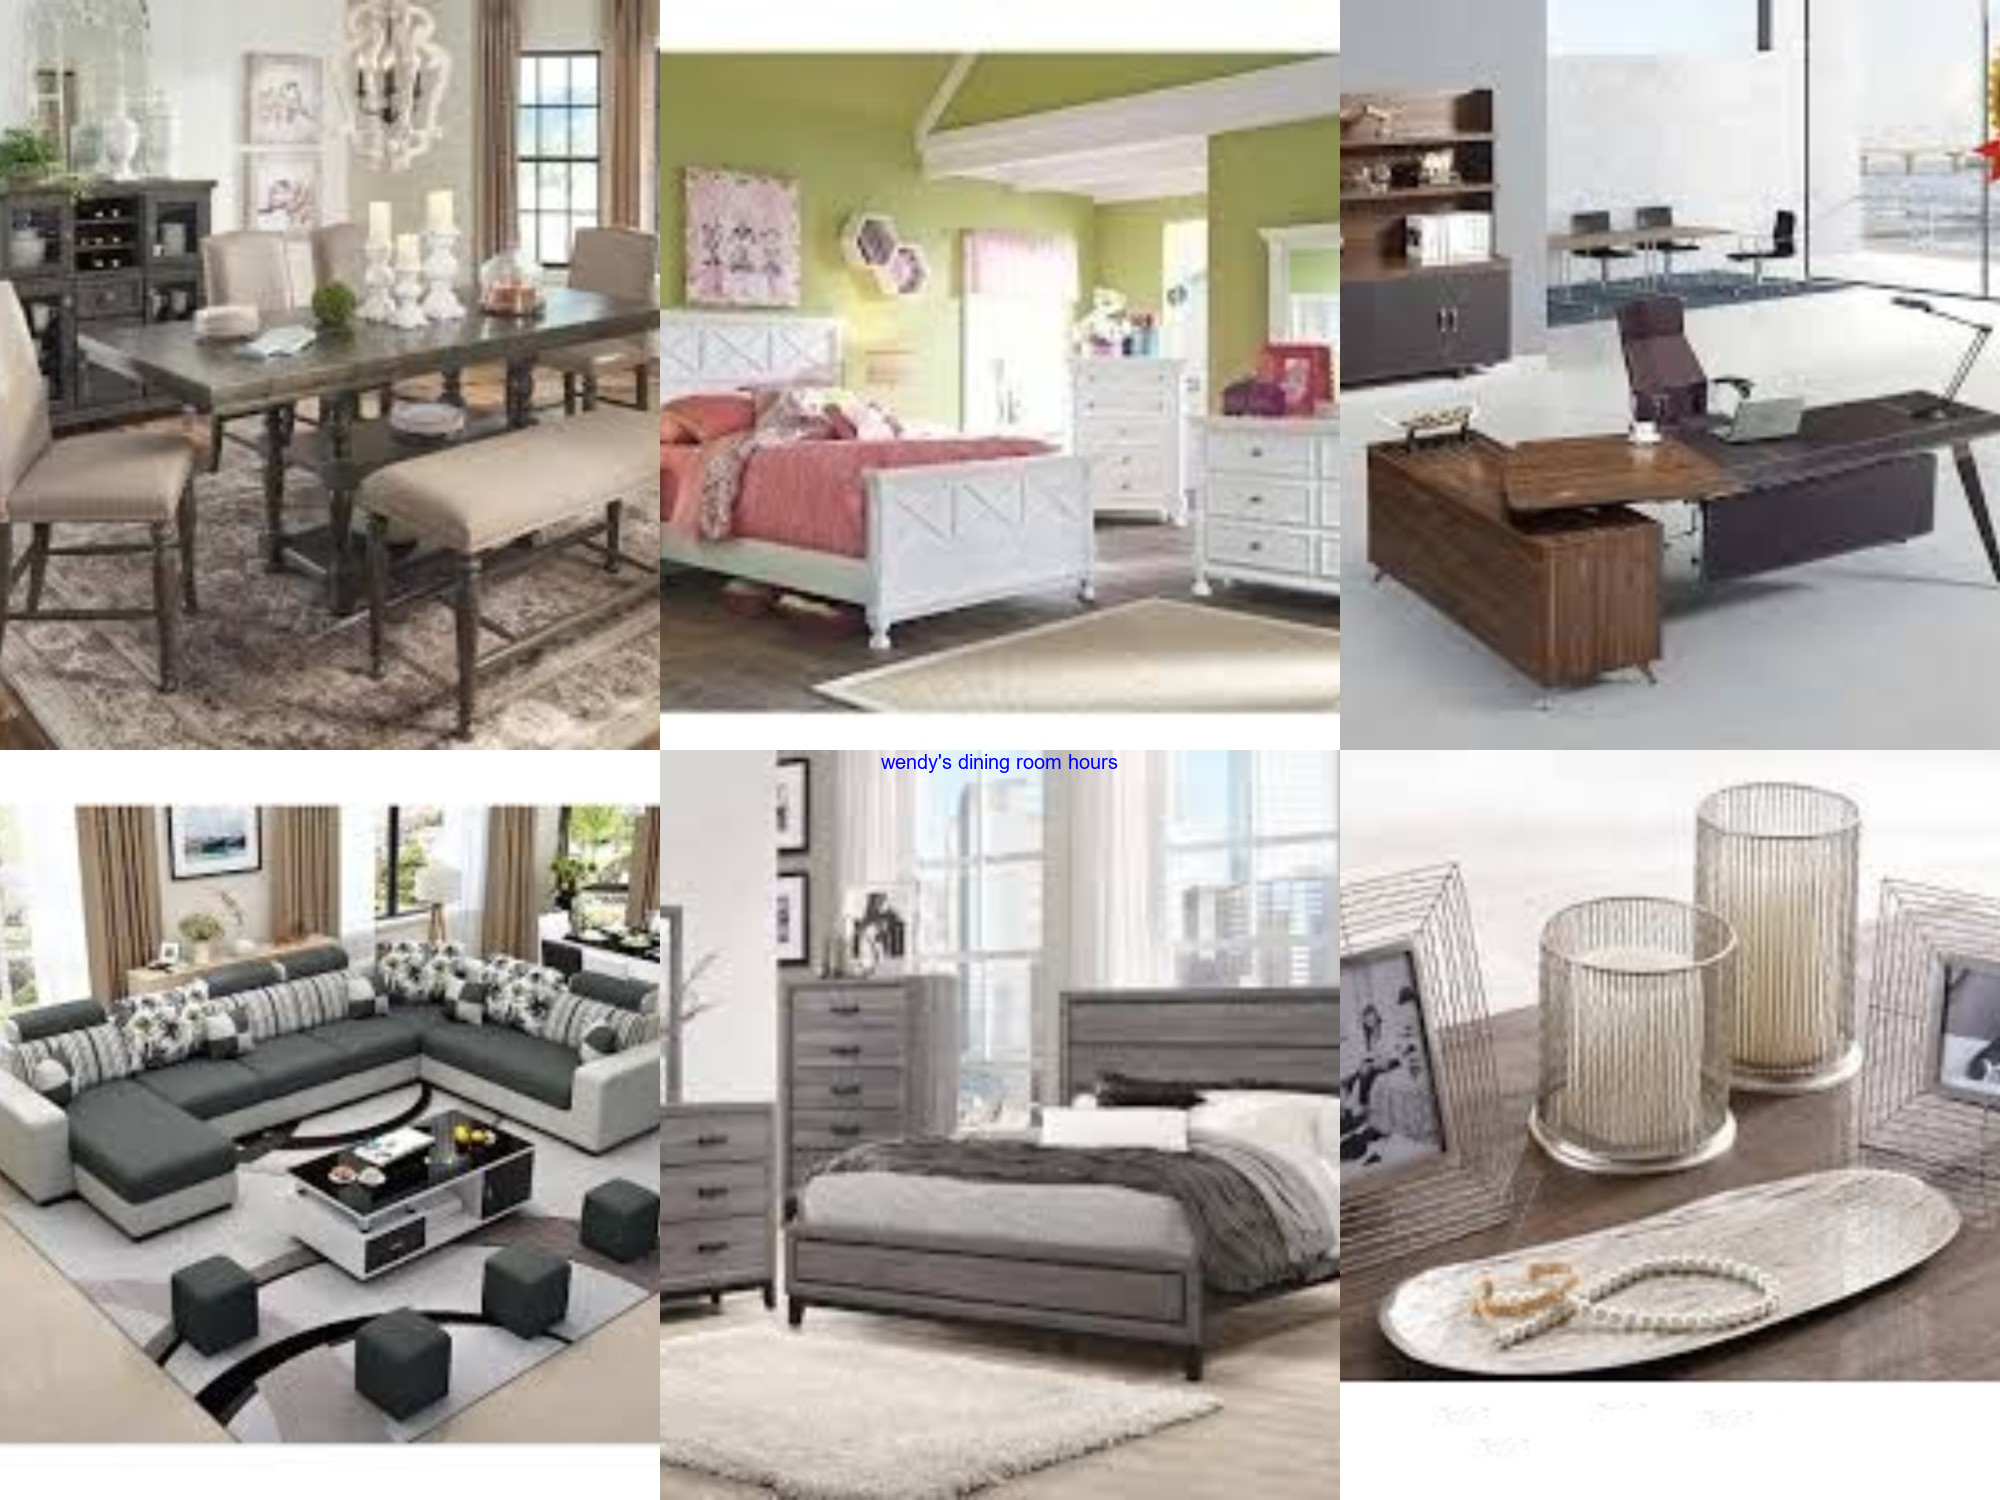 Wendy S Dining Room Hours I Suggest One To Visit This Website Where You Can Get Discounts For Your Fur In 2020 Value City Furniture Parker House Wholesale Furniture